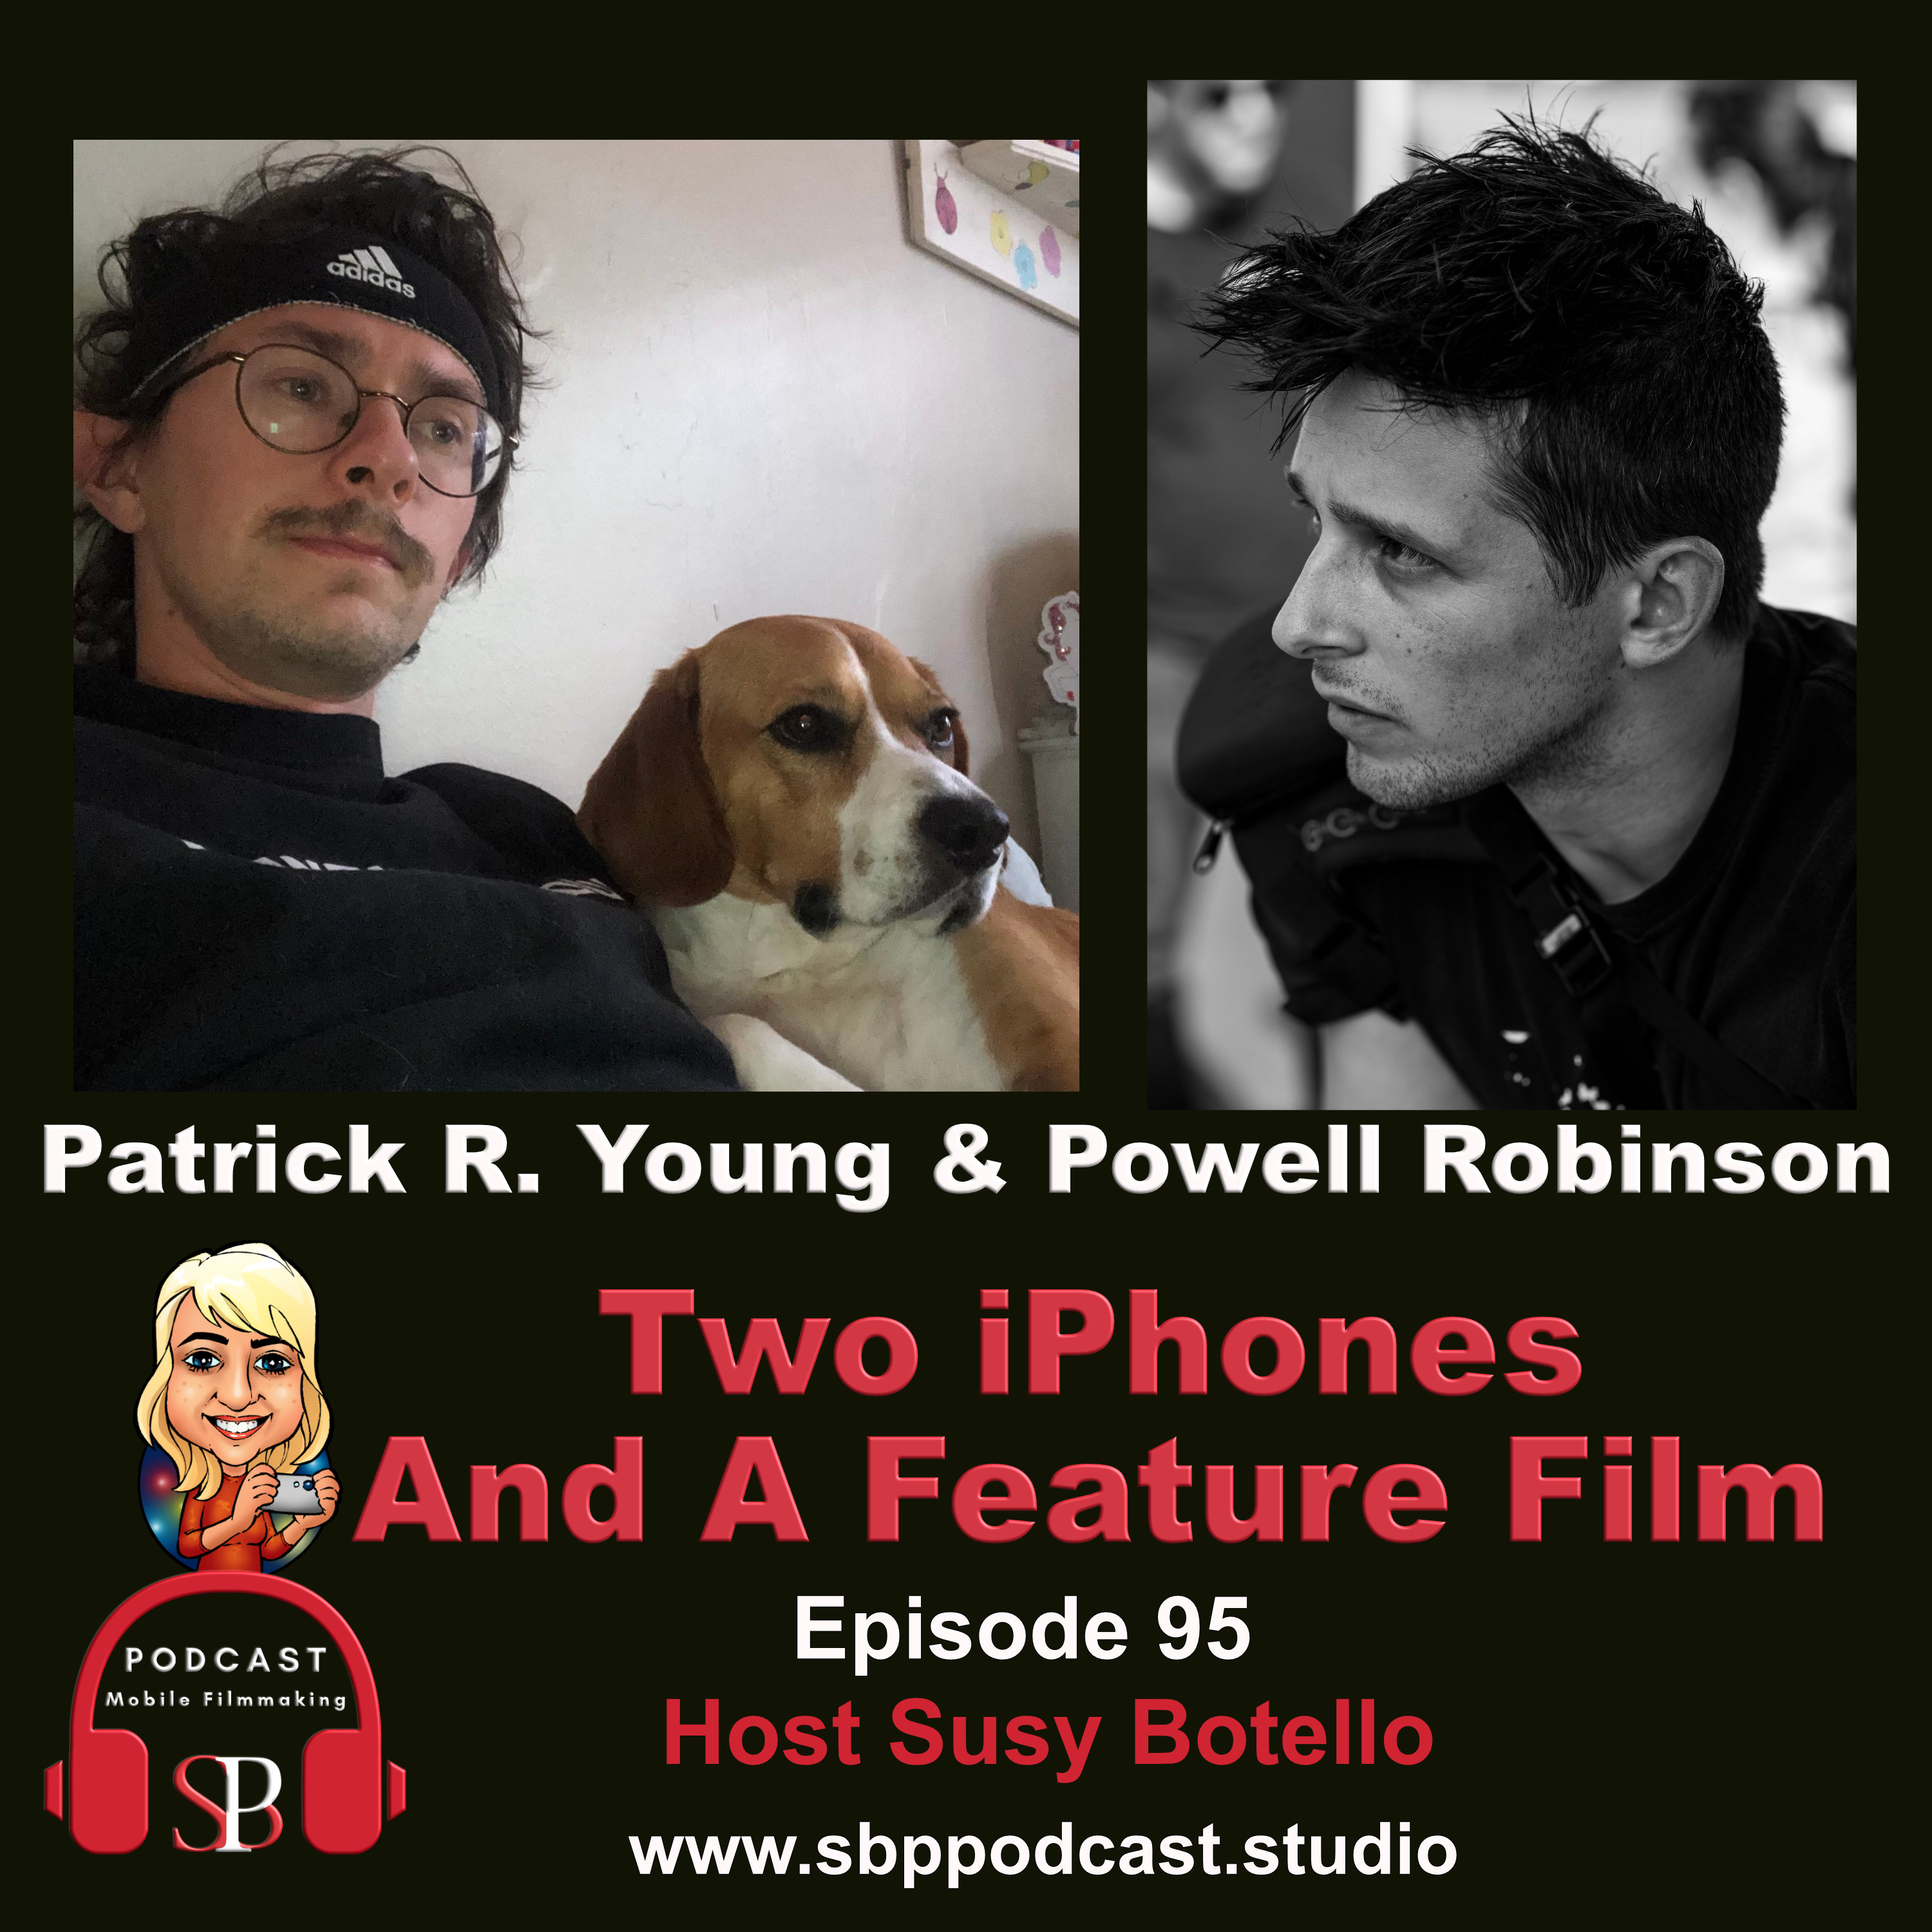 Two iPhones and a Feature Film with Patrick R. Young and Powell Robinson